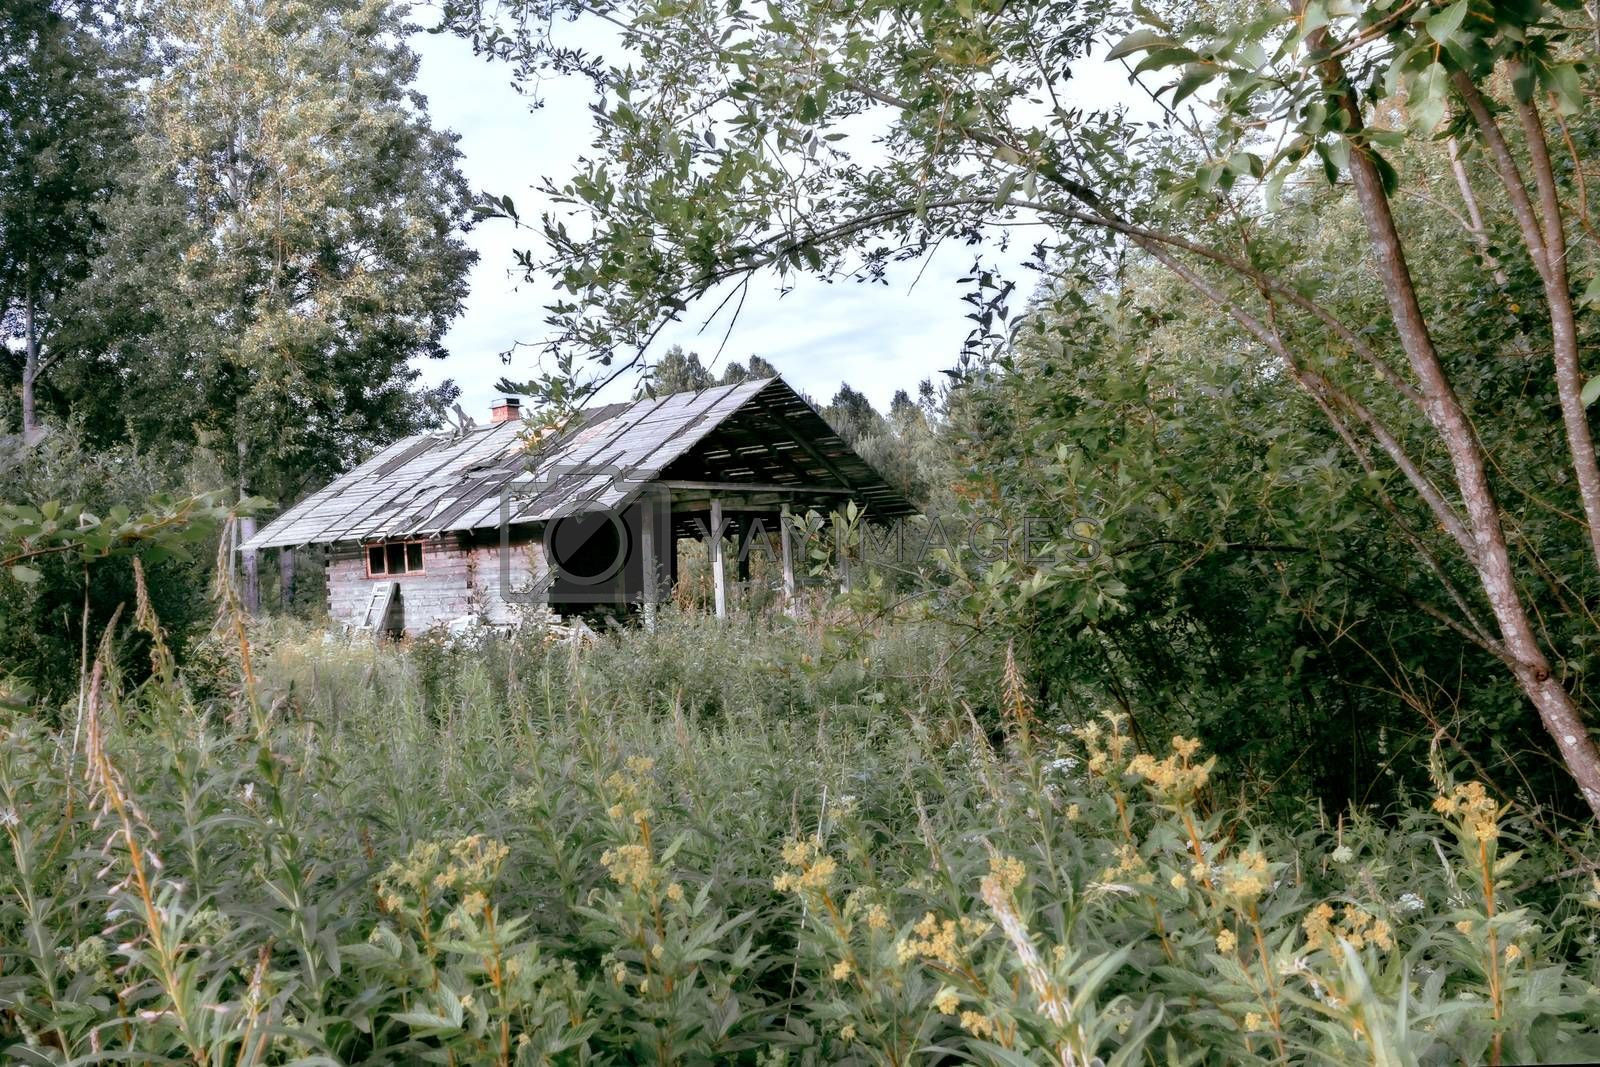 Old abandoned house among the lush summer greenery in the forest by galsand